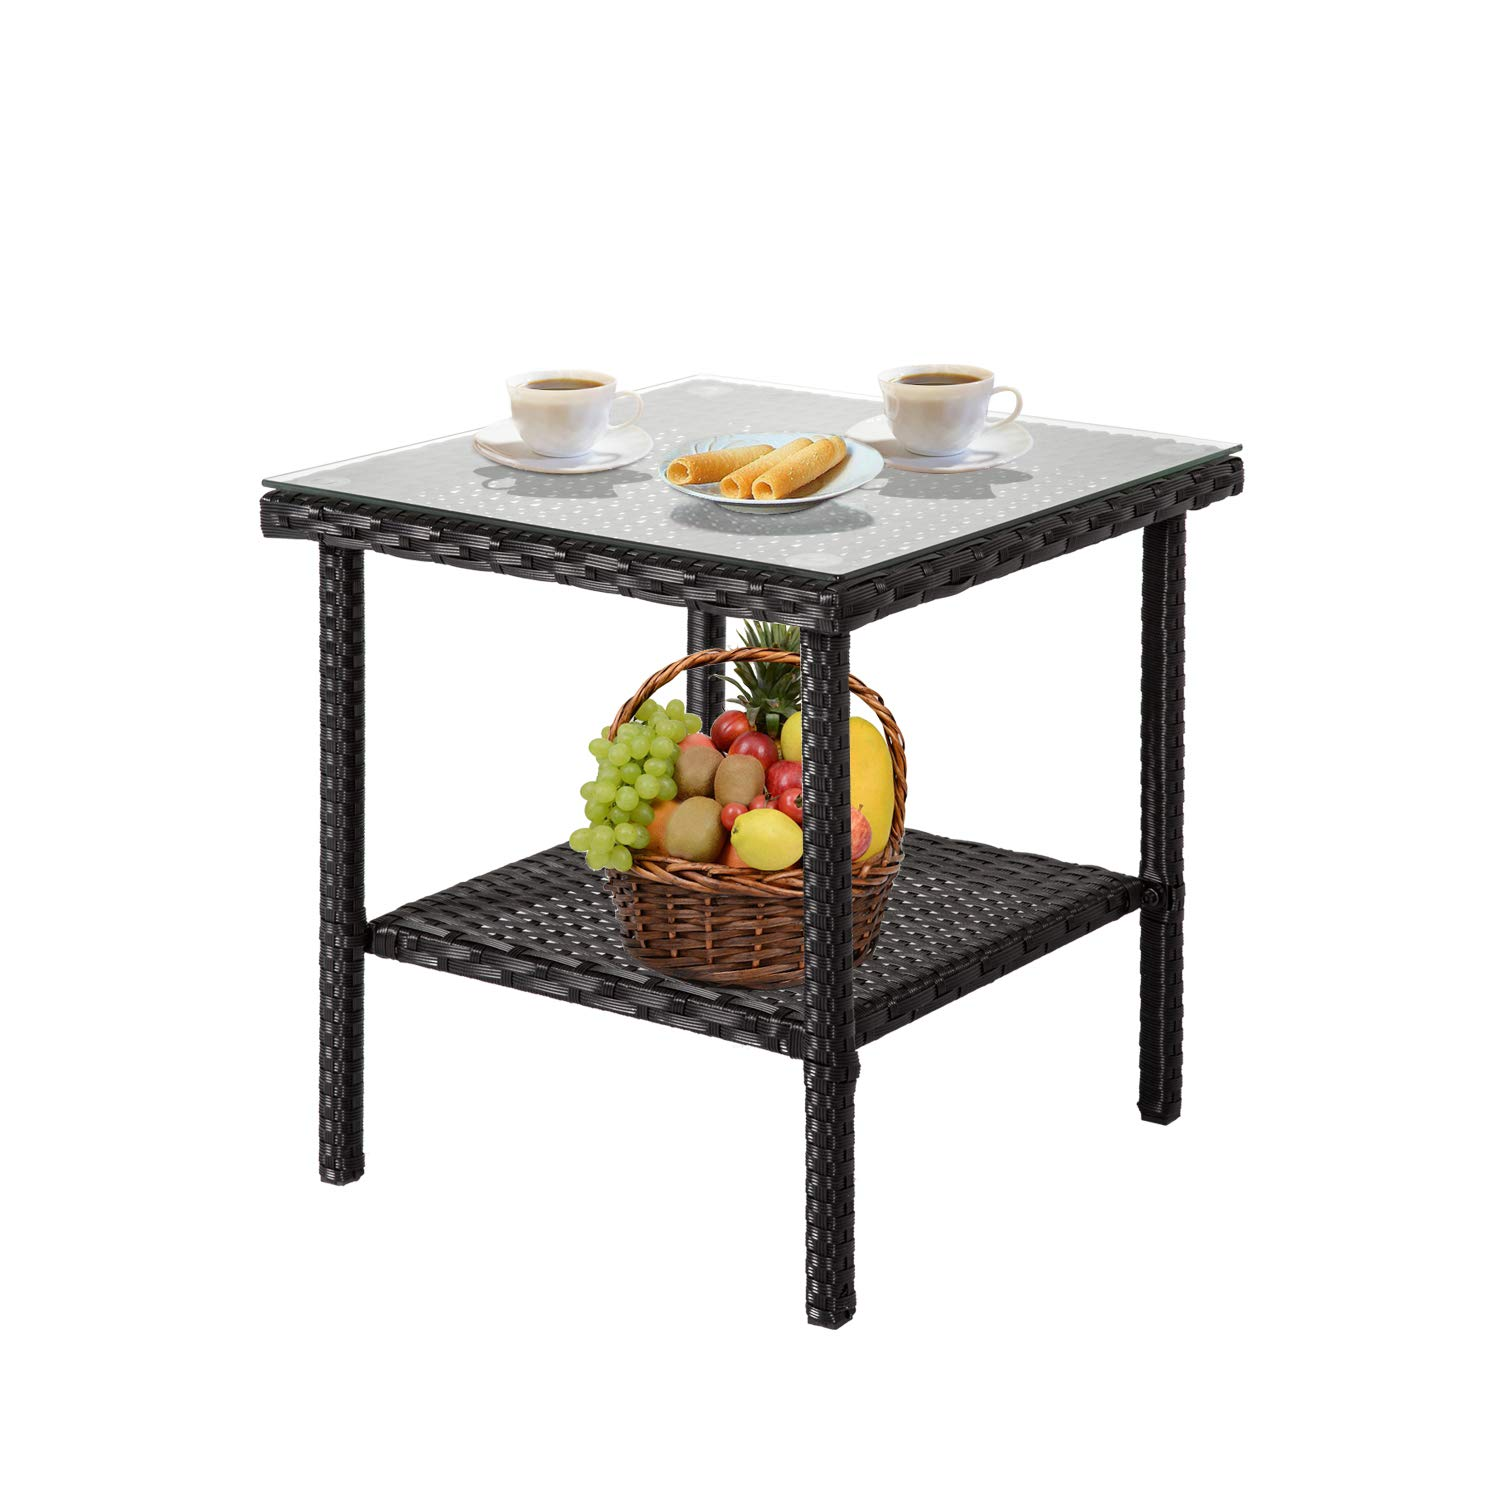 Kinbor Wicker End Table Rattan Outdoor Square Side Table Glass Top Patio Furniture Storage